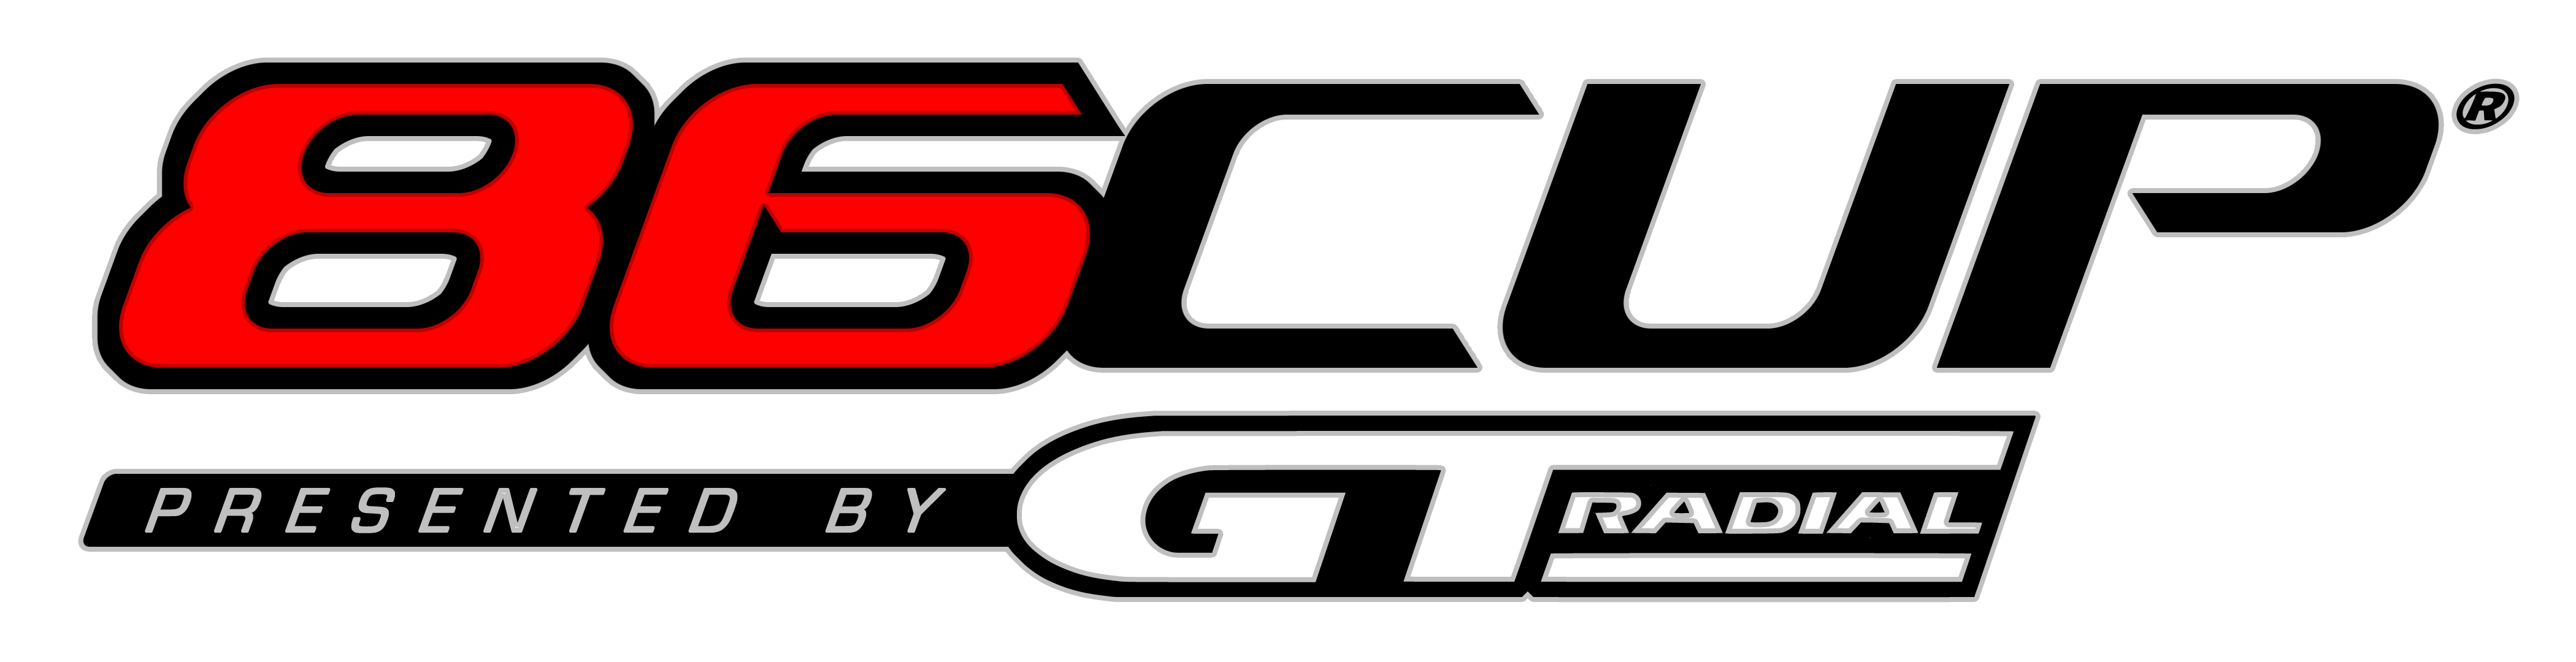 86 cup logo gtradial